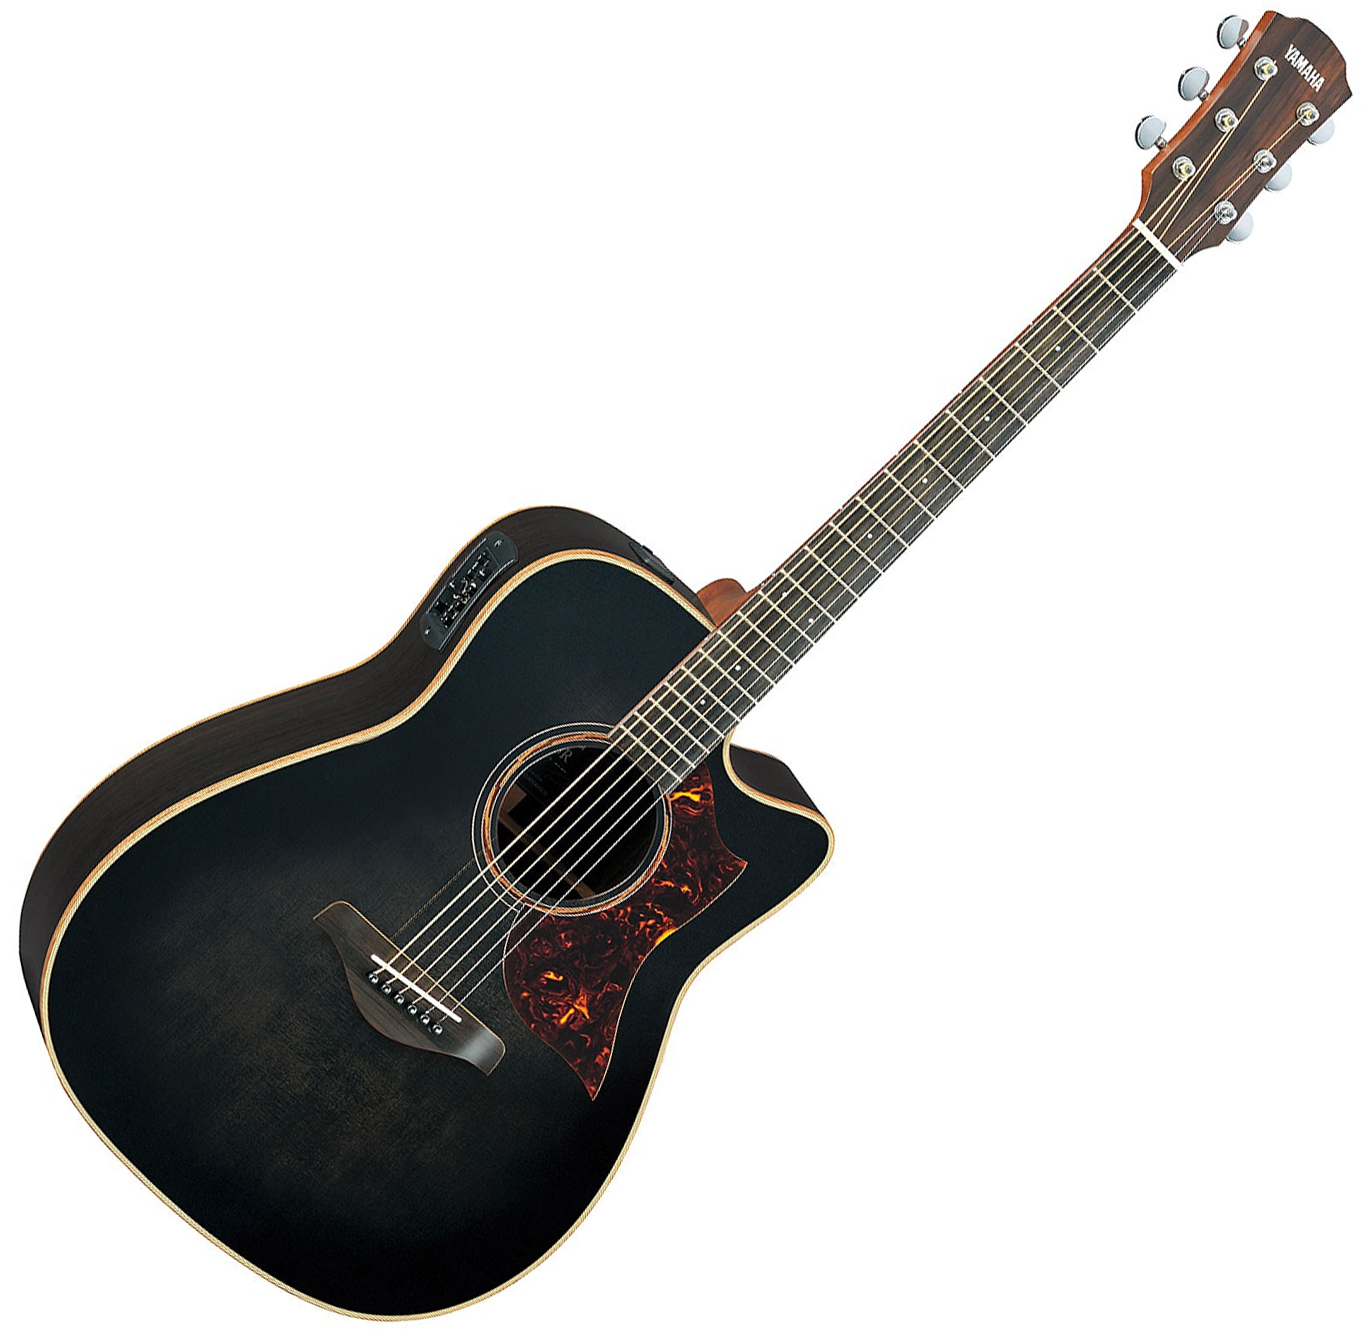 musicworks guitars acoustic electric guitars acoustic electric guitar yamaha acoustic. Black Bedroom Furniture Sets. Home Design Ideas